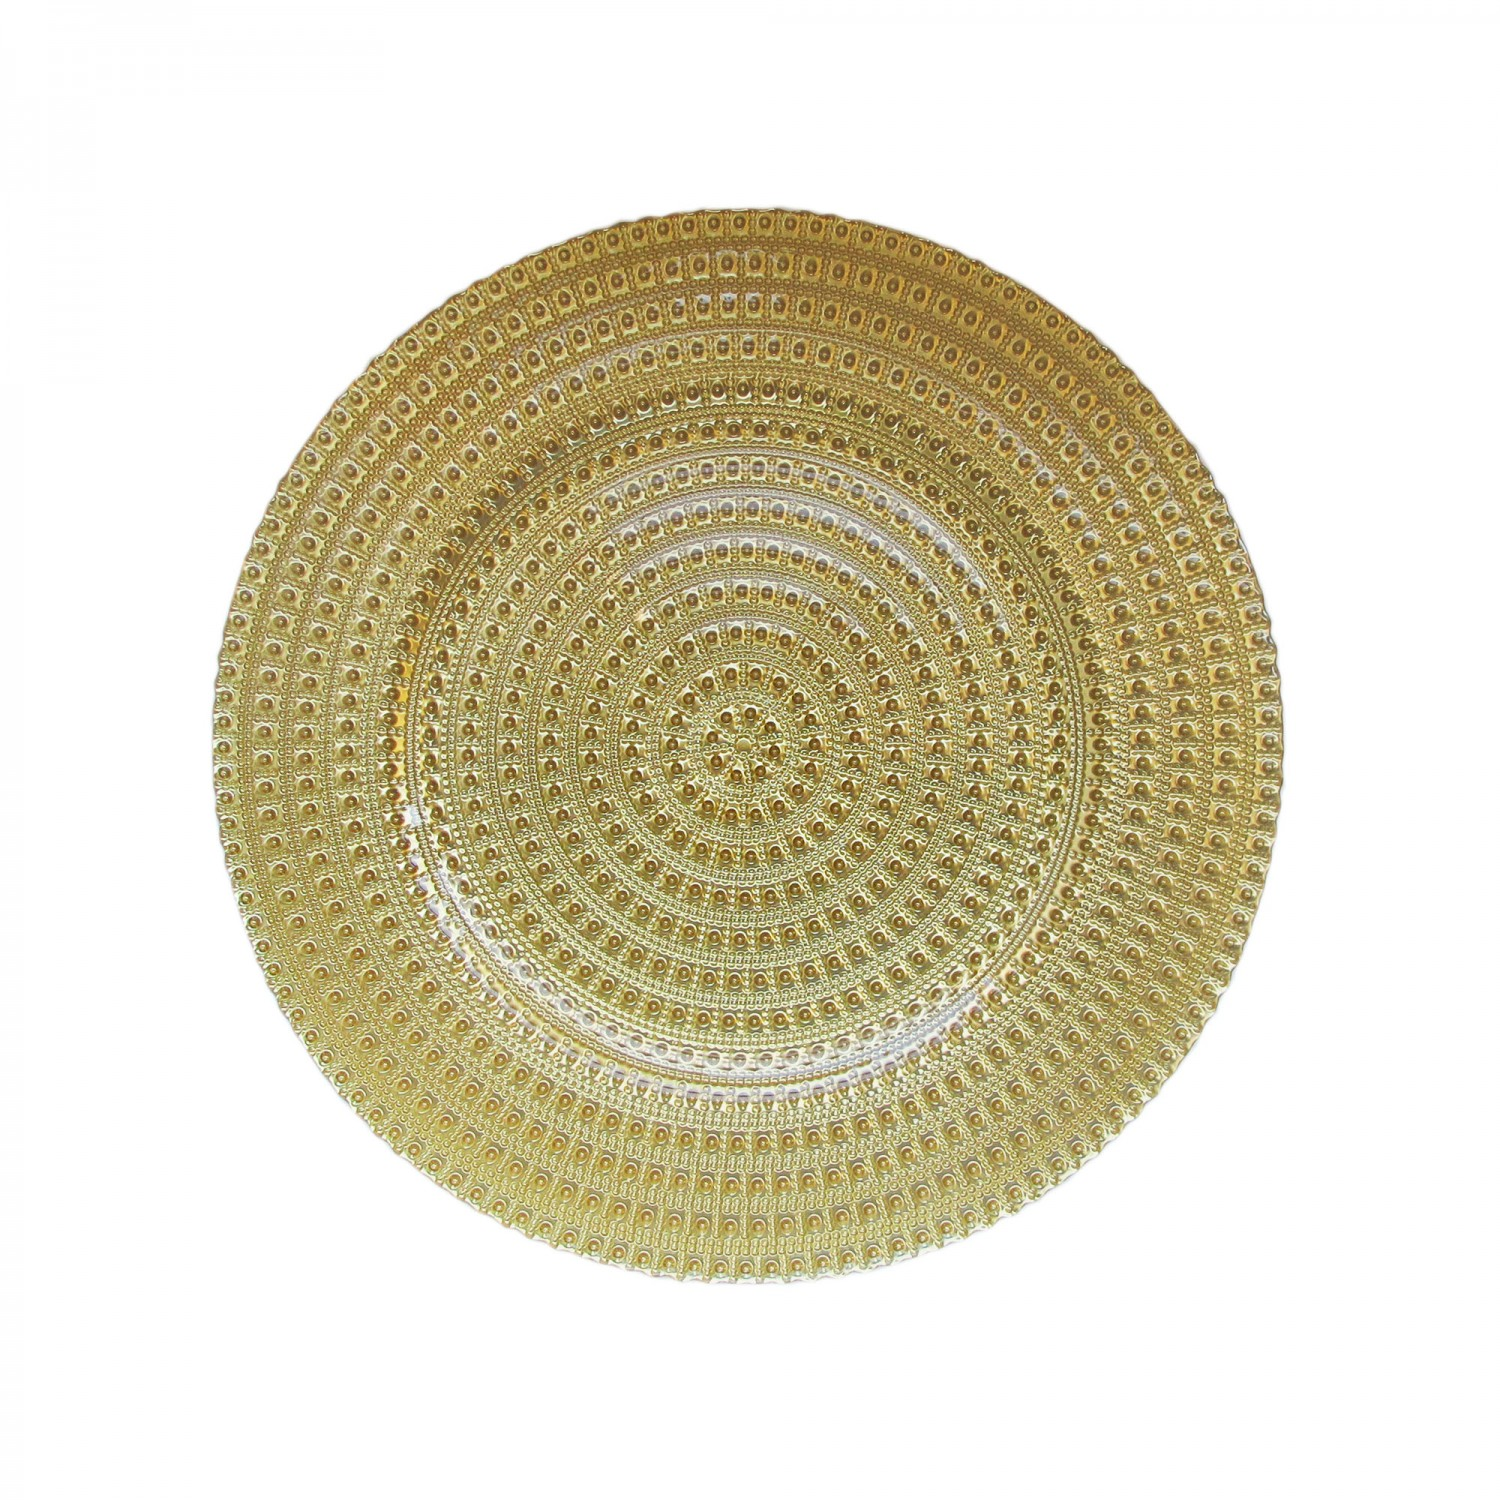 The Jay Companies 1470357 Round Gold Tripoli Glass Charger Plate 13""